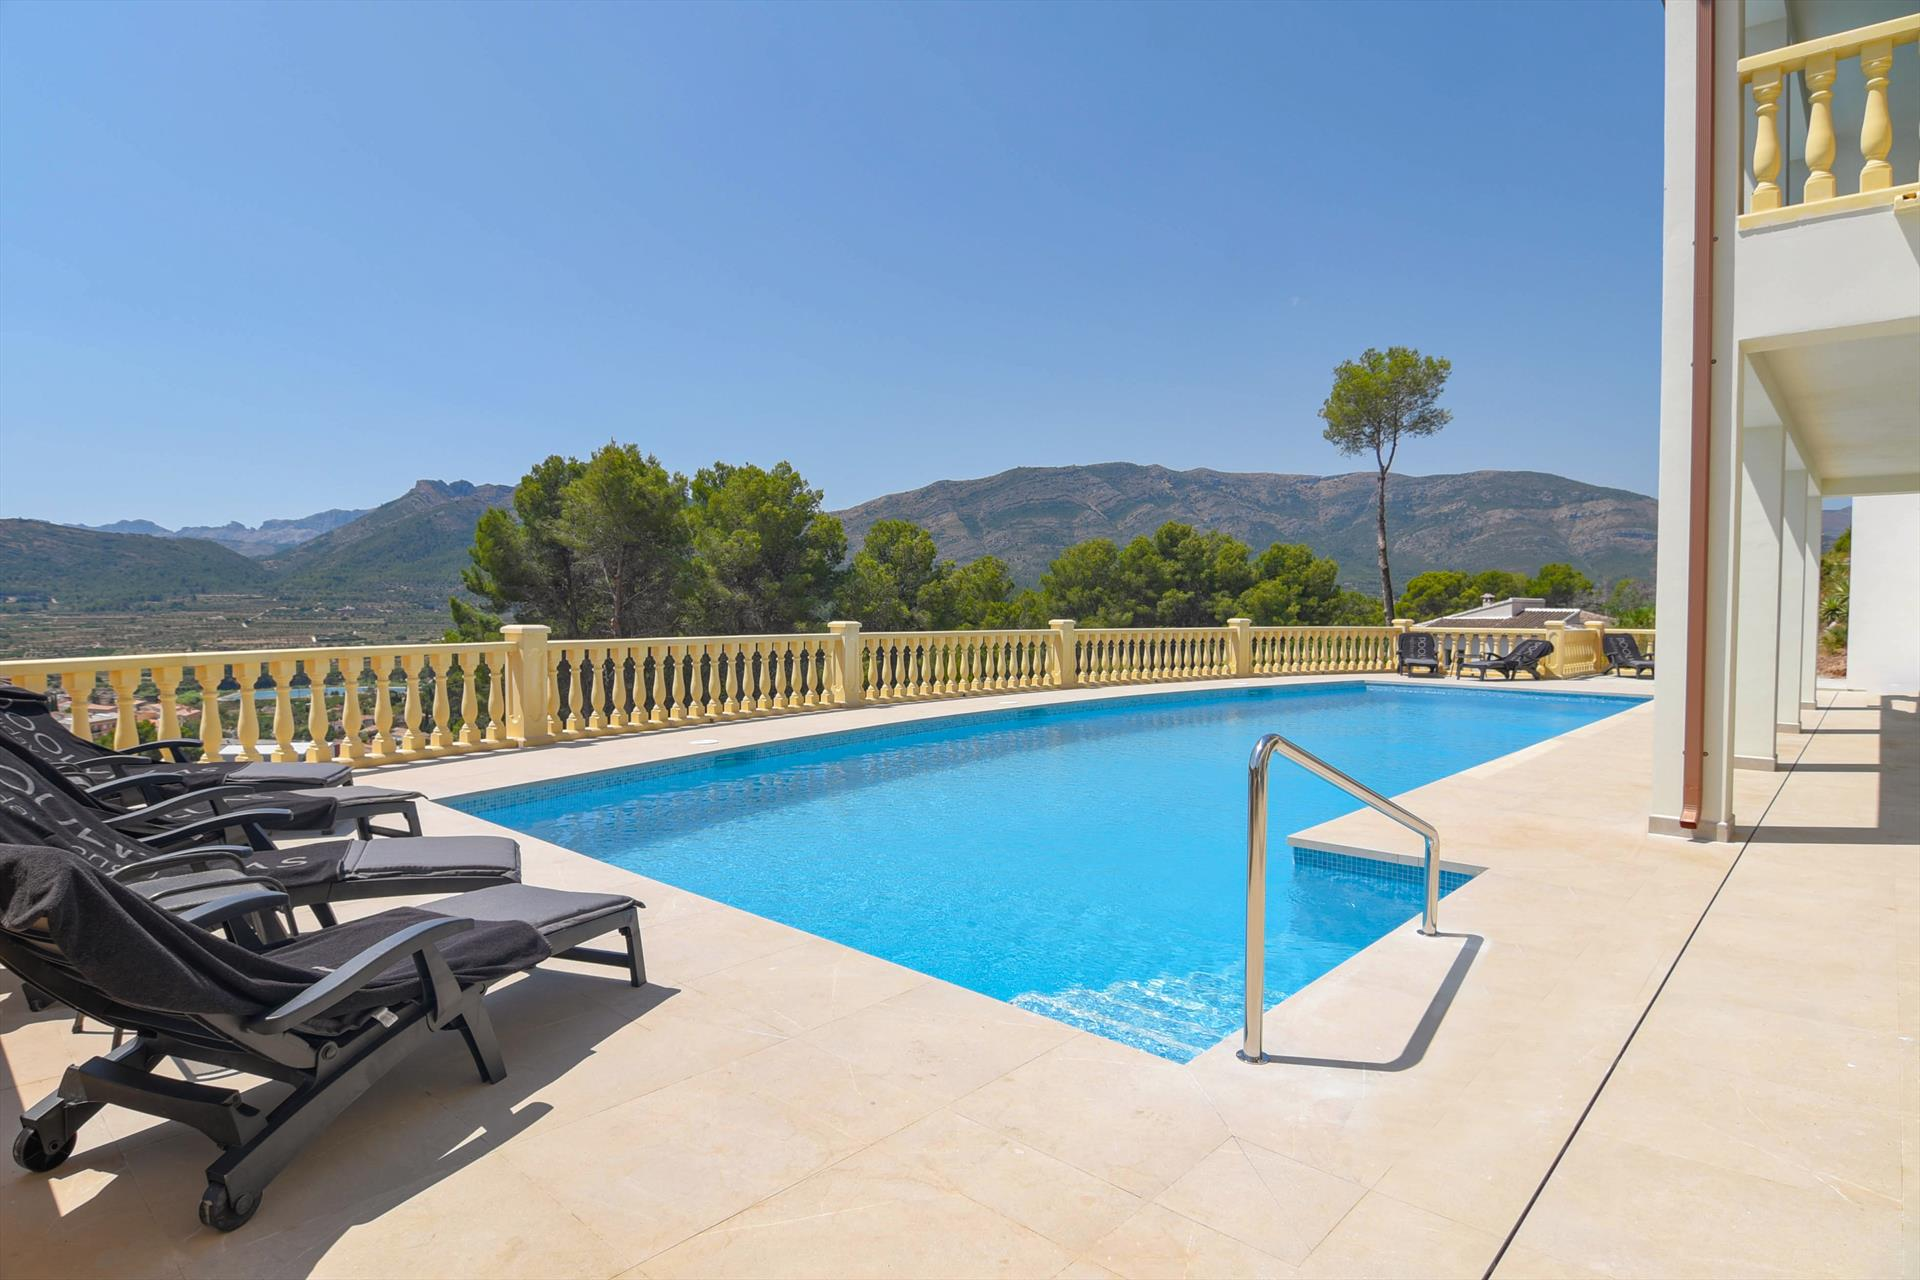 Mimosa,Wonderful luxury villa in Alcalali, on the Costa Blanca, Spain  with private pool for 12 persons.....